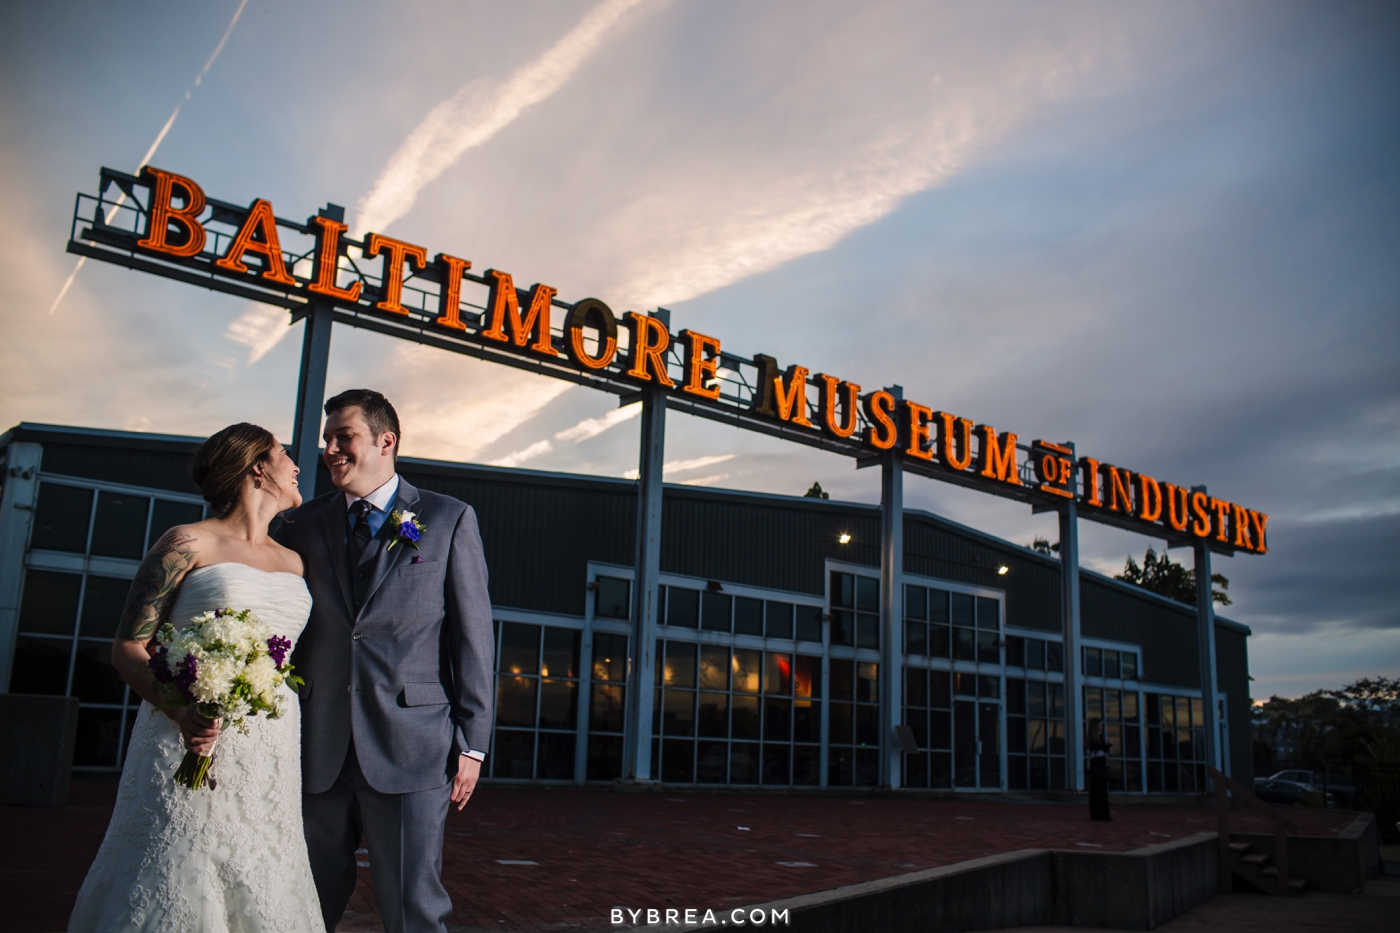 Baltimore Museum of Industry wedding bride and groom sunset